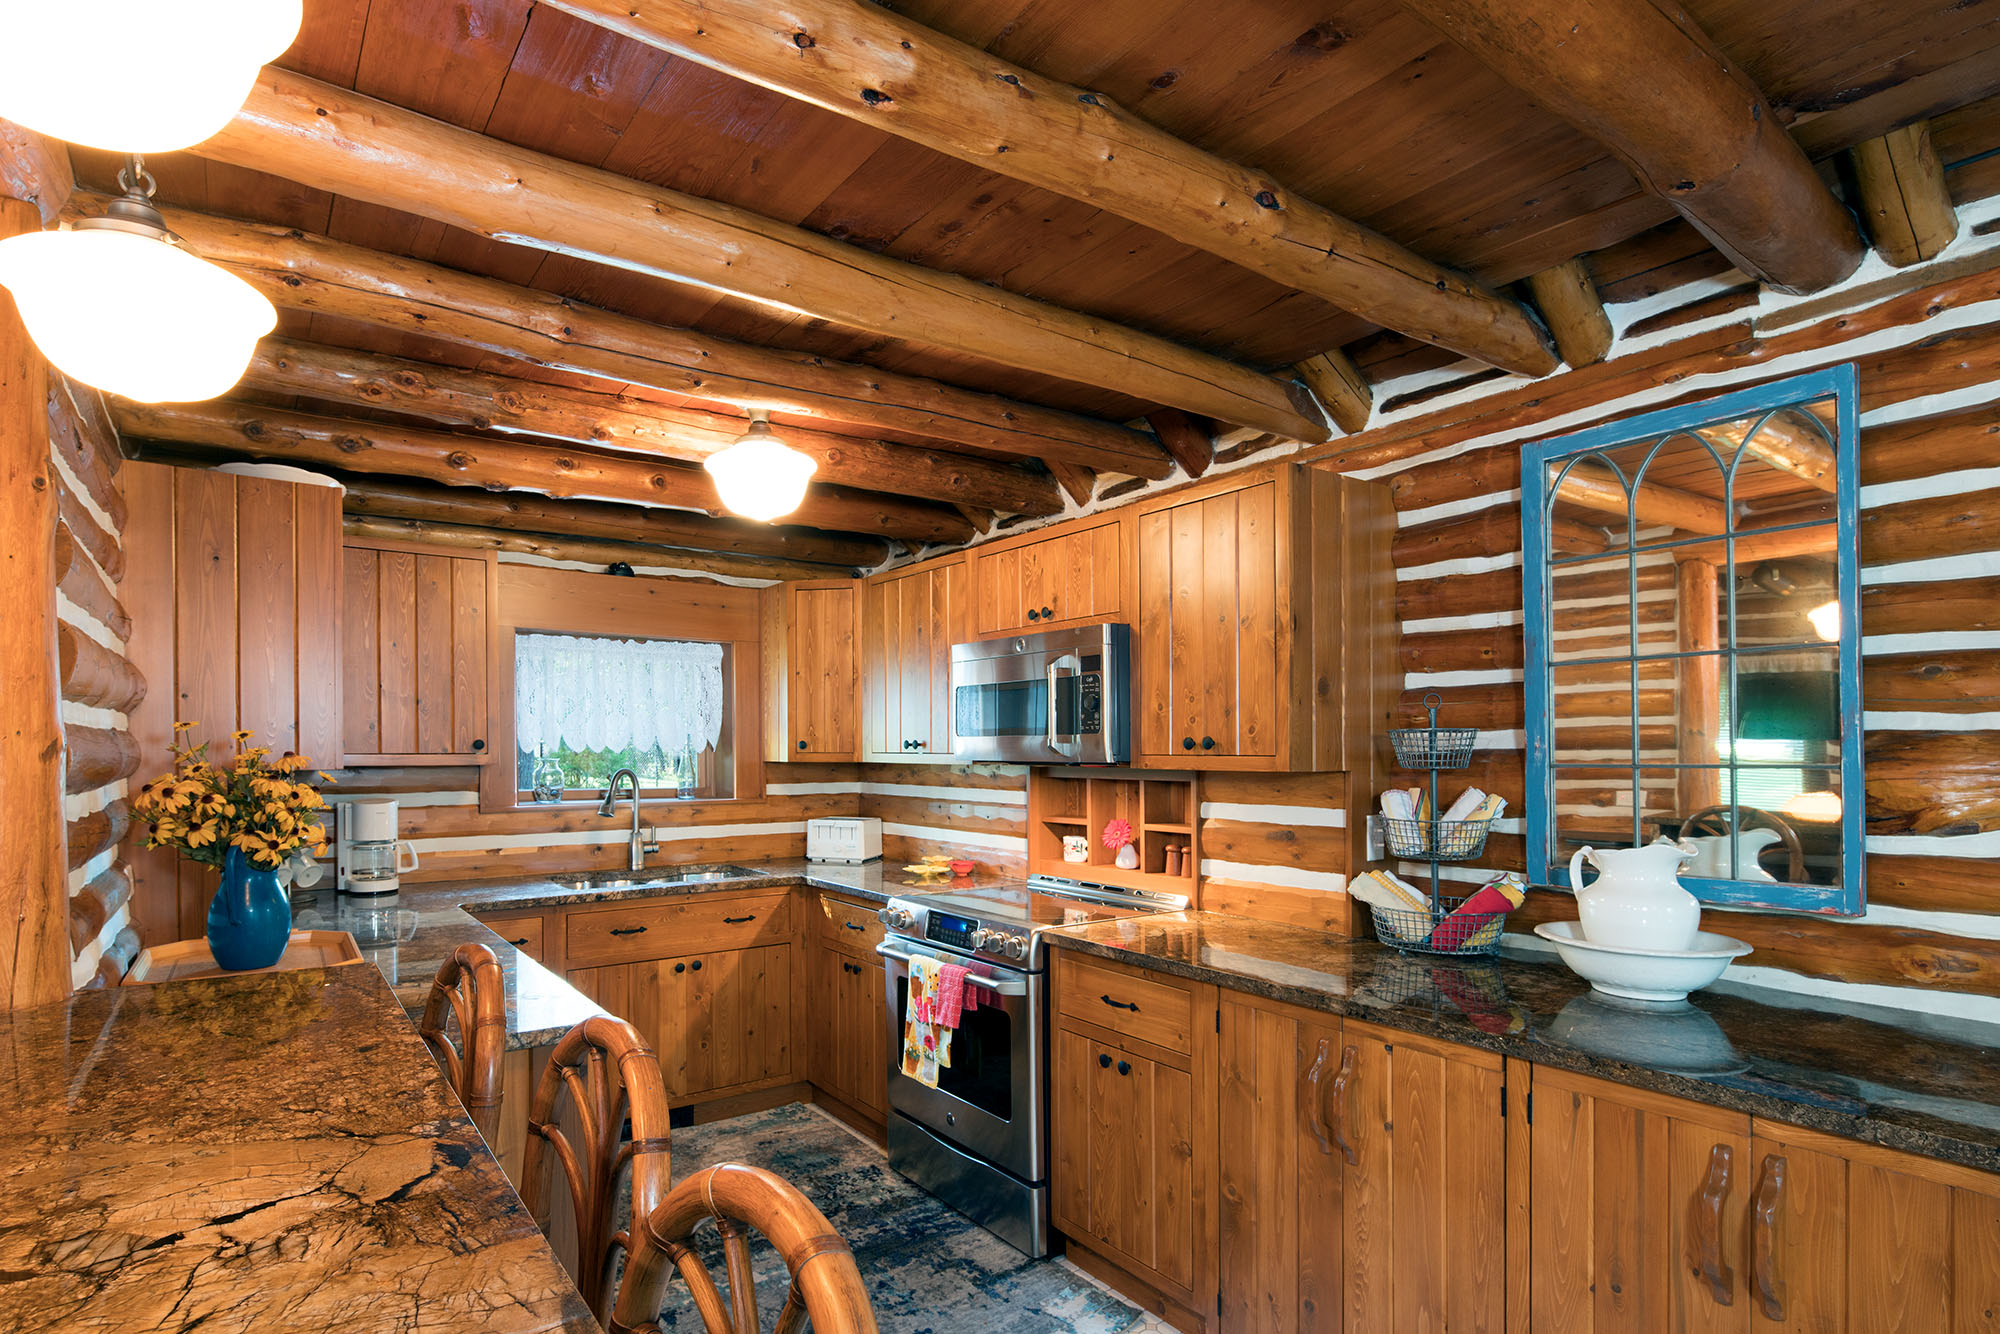 Remodeled Log Cabin Kitchen Renovation On Torch Lake